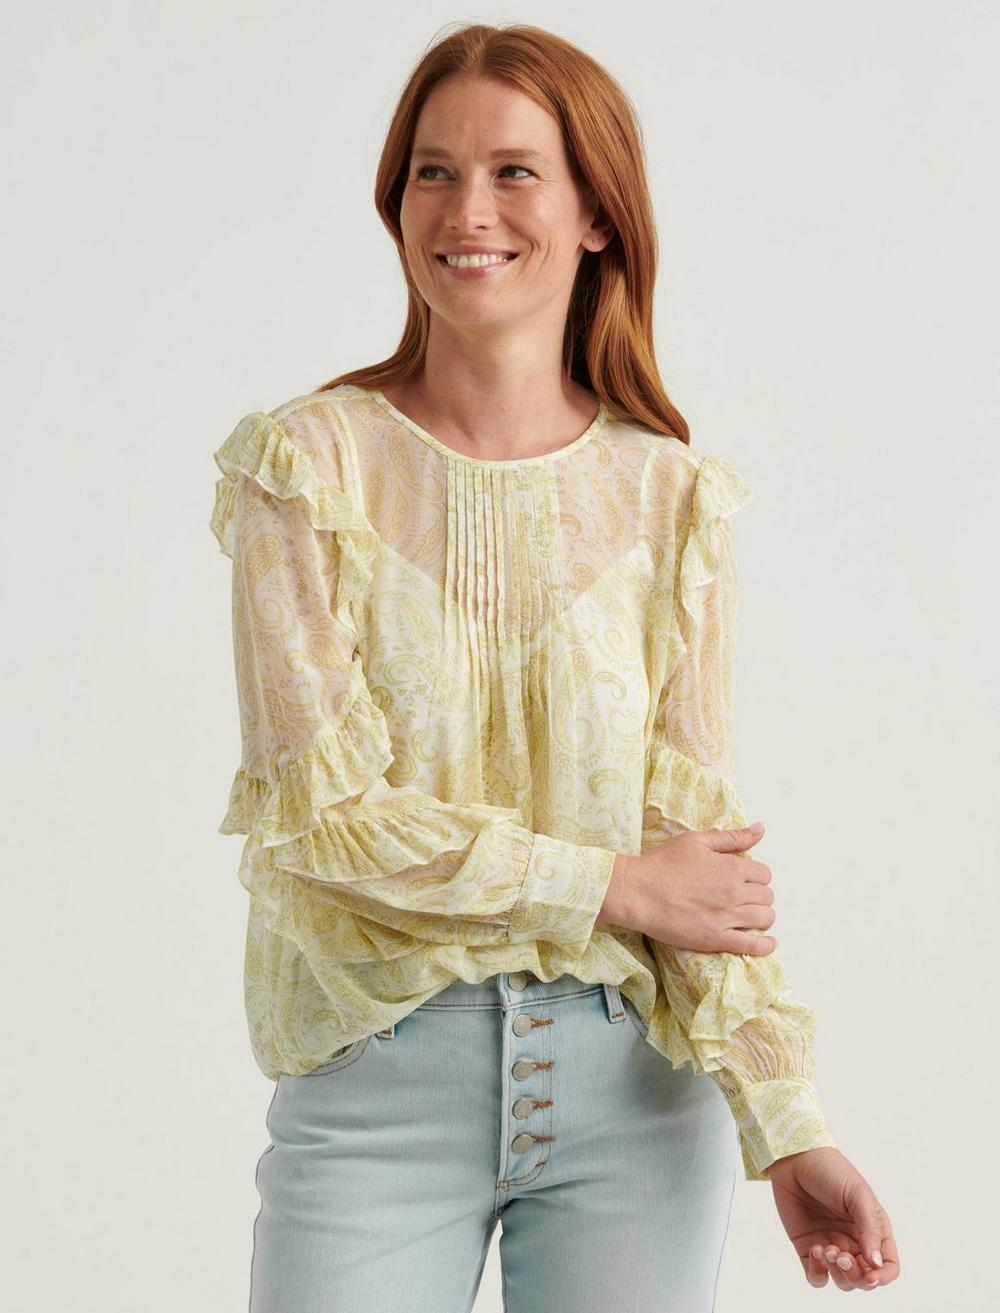 GEORGETTE RUFFLE BLOUSE TOP, image 1